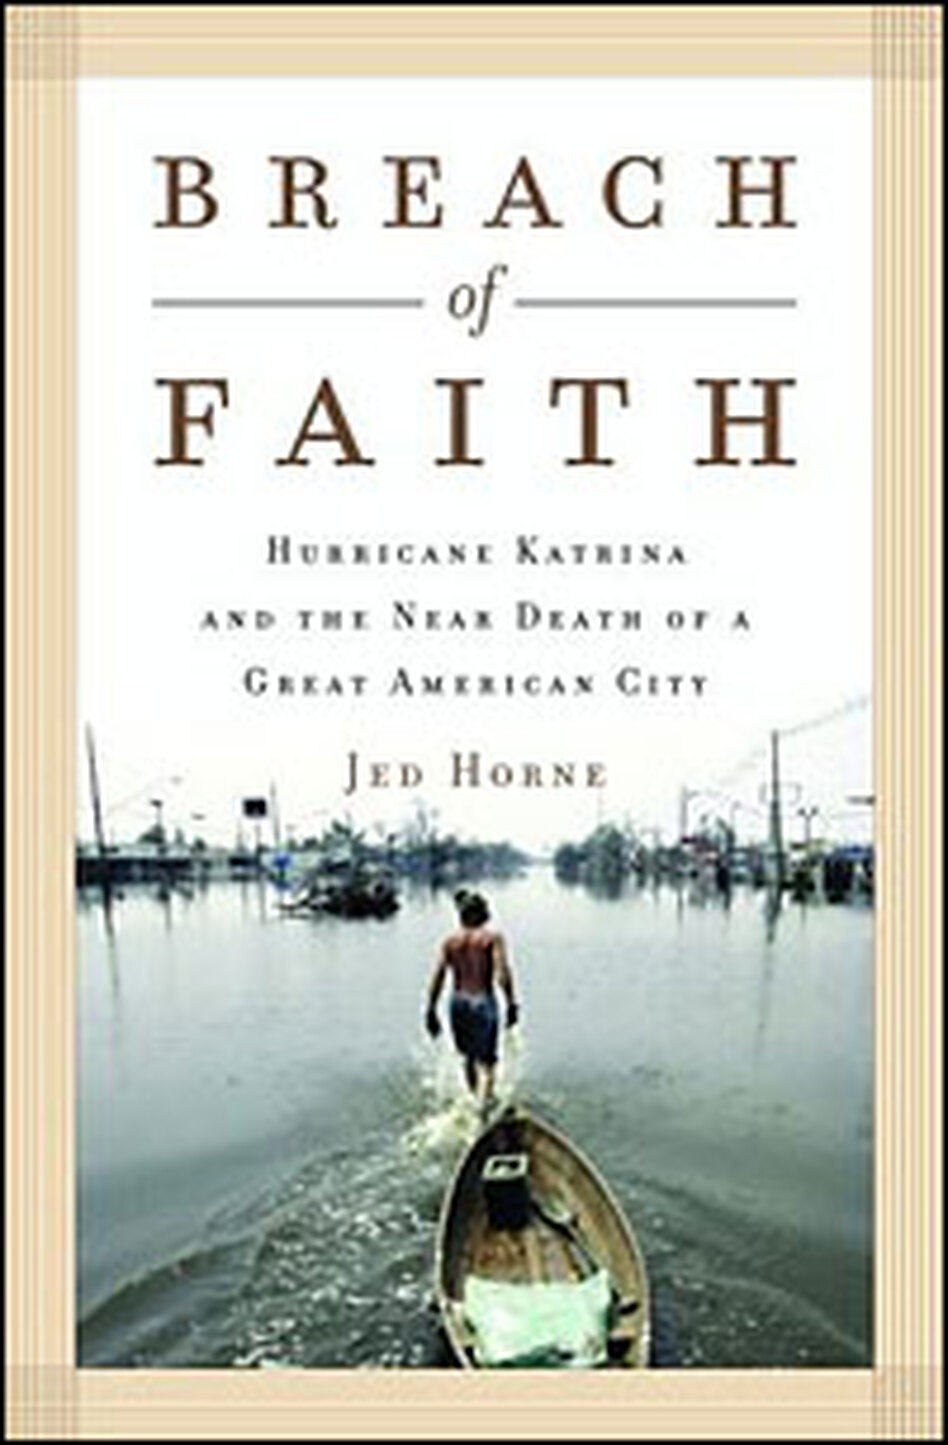 Jed Horne's <em>Breach of Faith</em> has been praised as one of the best books about Katrina so far. A veteran editor of <em>The (New Orleans) Times-Picayune</em>, Horne delivers pathos in the survivor stories, and shows a shrewd eye for detail.